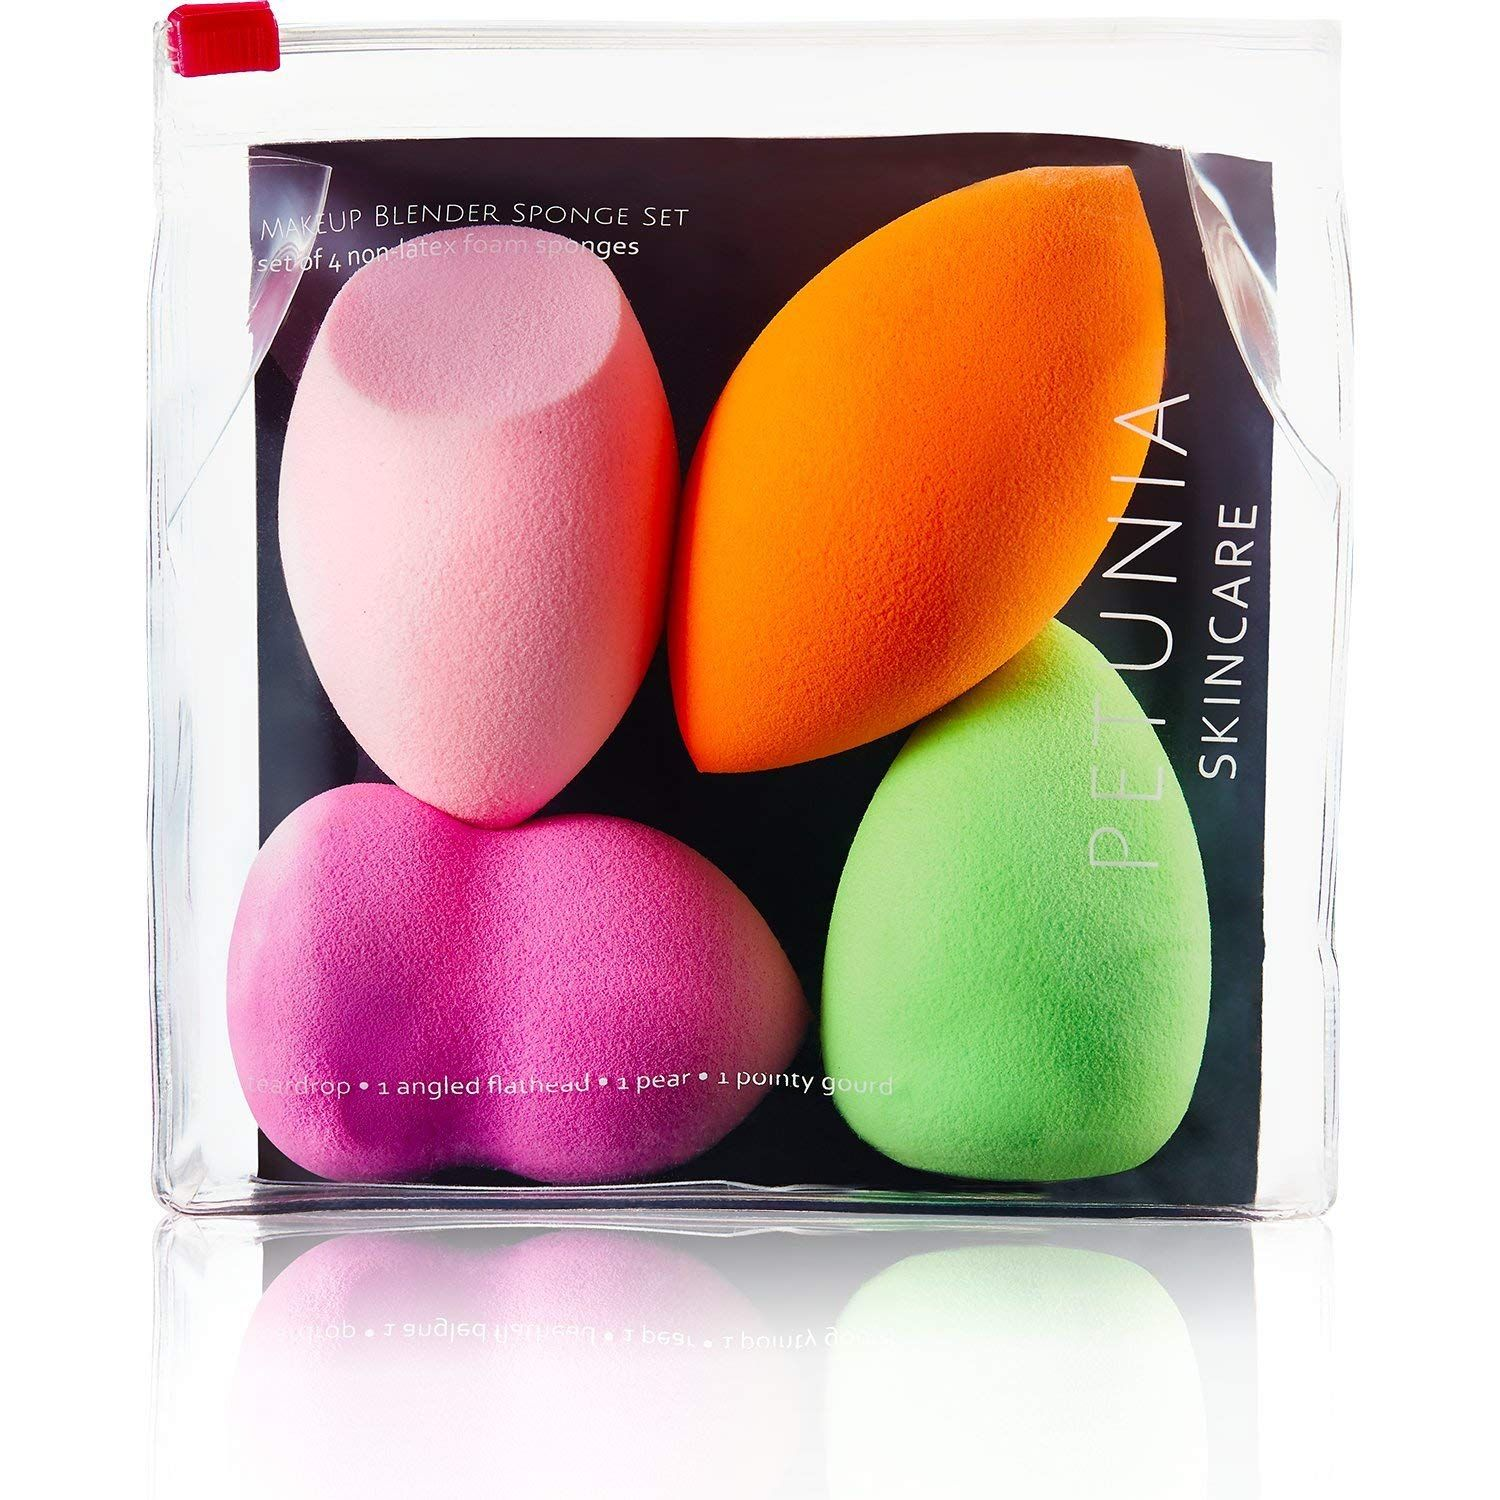 Makeup Beauty Dupe Sponge Blender 226 4pc Multi Functional